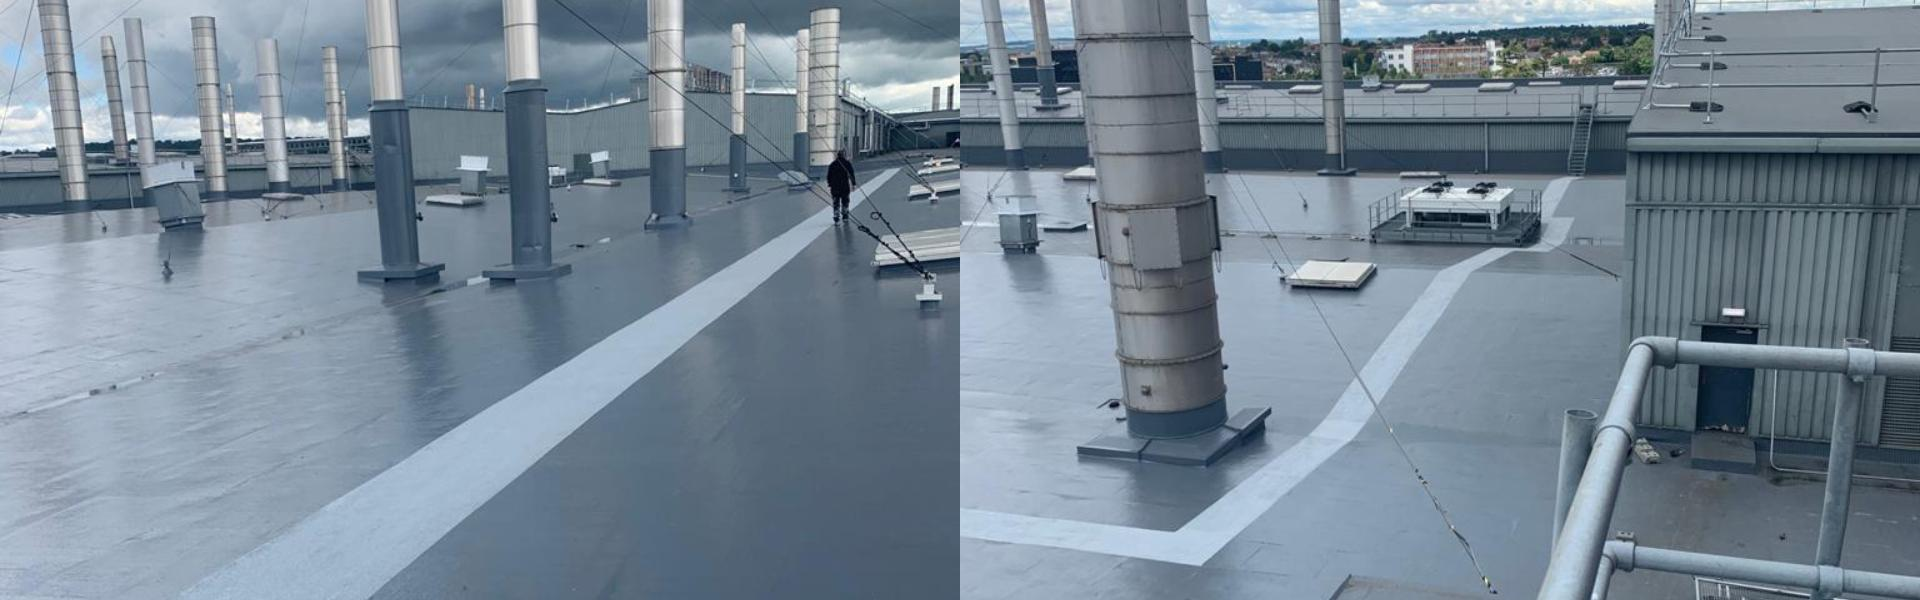 Commercial Roofing Specialists - UK wide